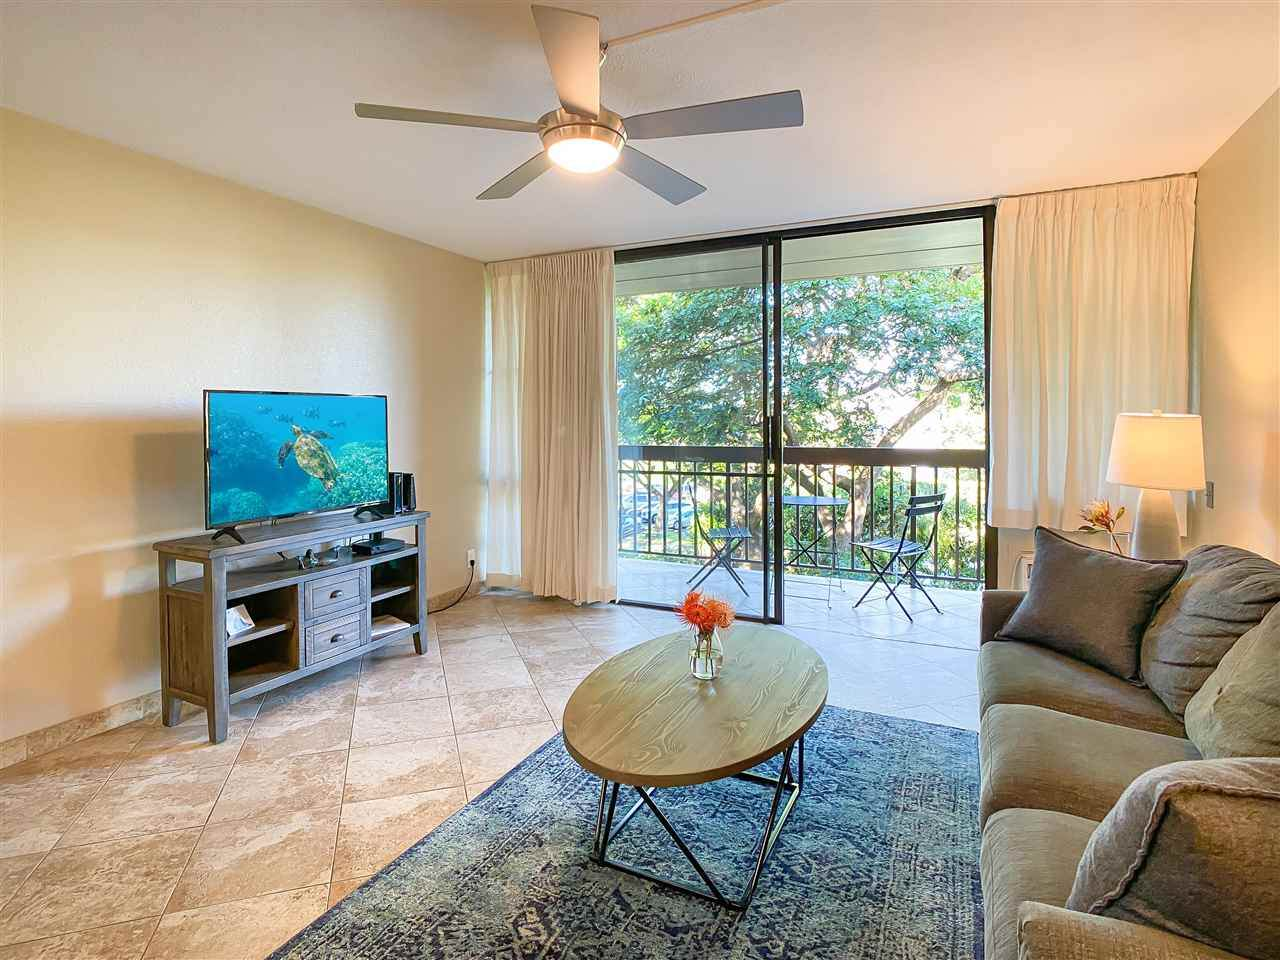 2191 Kihei Rd - Photo 1